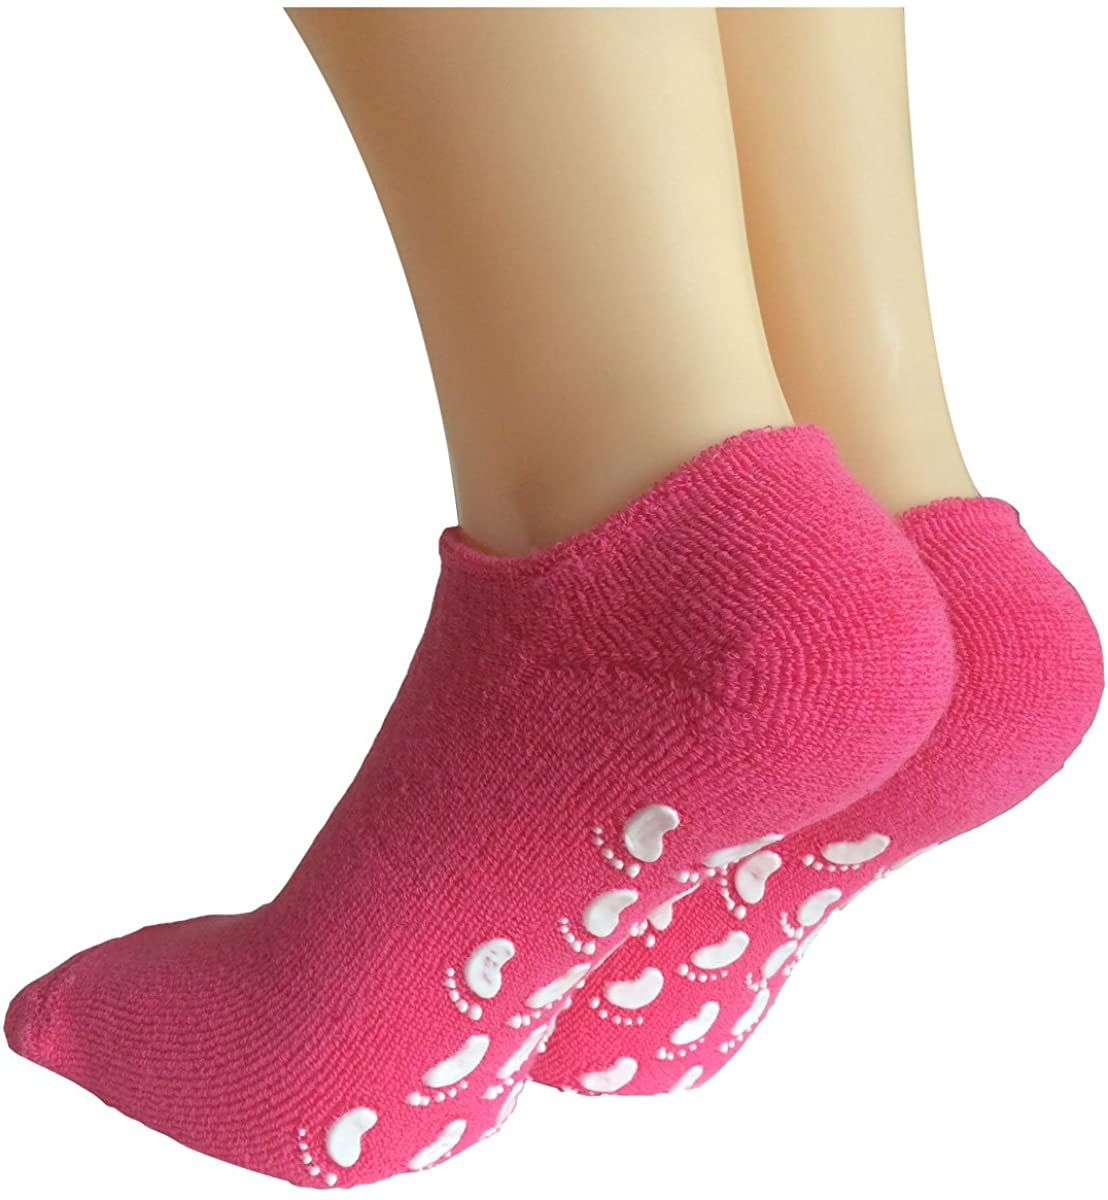 Lantee Non Slip Skid Proof Low Cut No Show Womens Ankle Hospital Socks w/Grips